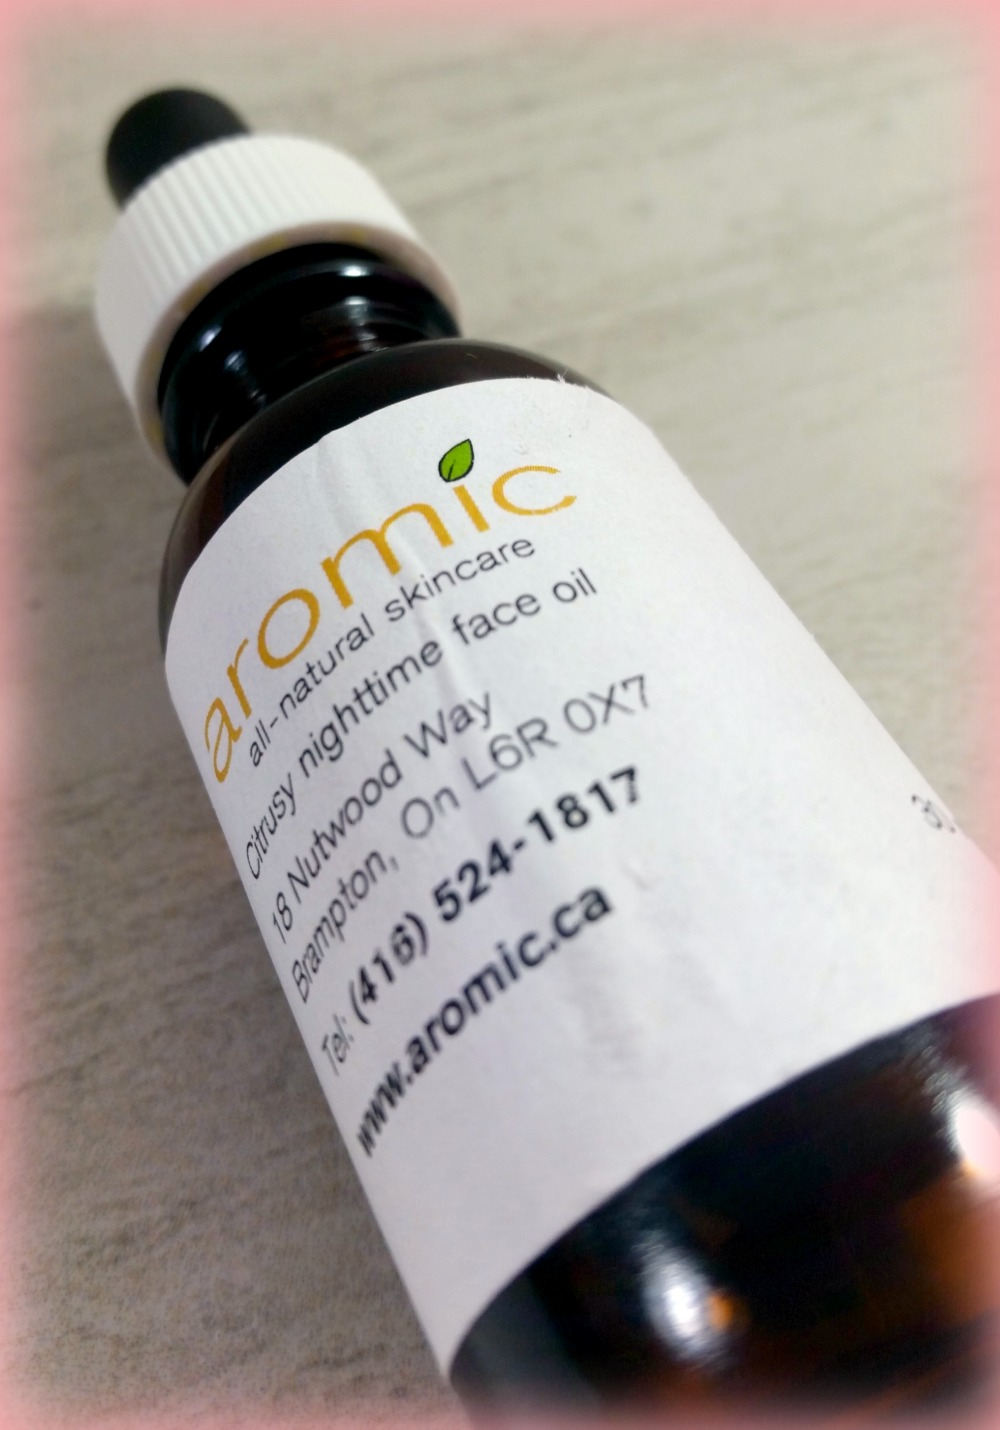 Aromic Skincare Review - Citrusy Nighttime Face Oil (by WhippedGreenGirl.com) #Organic #AllNatural #Handmade #Skincare